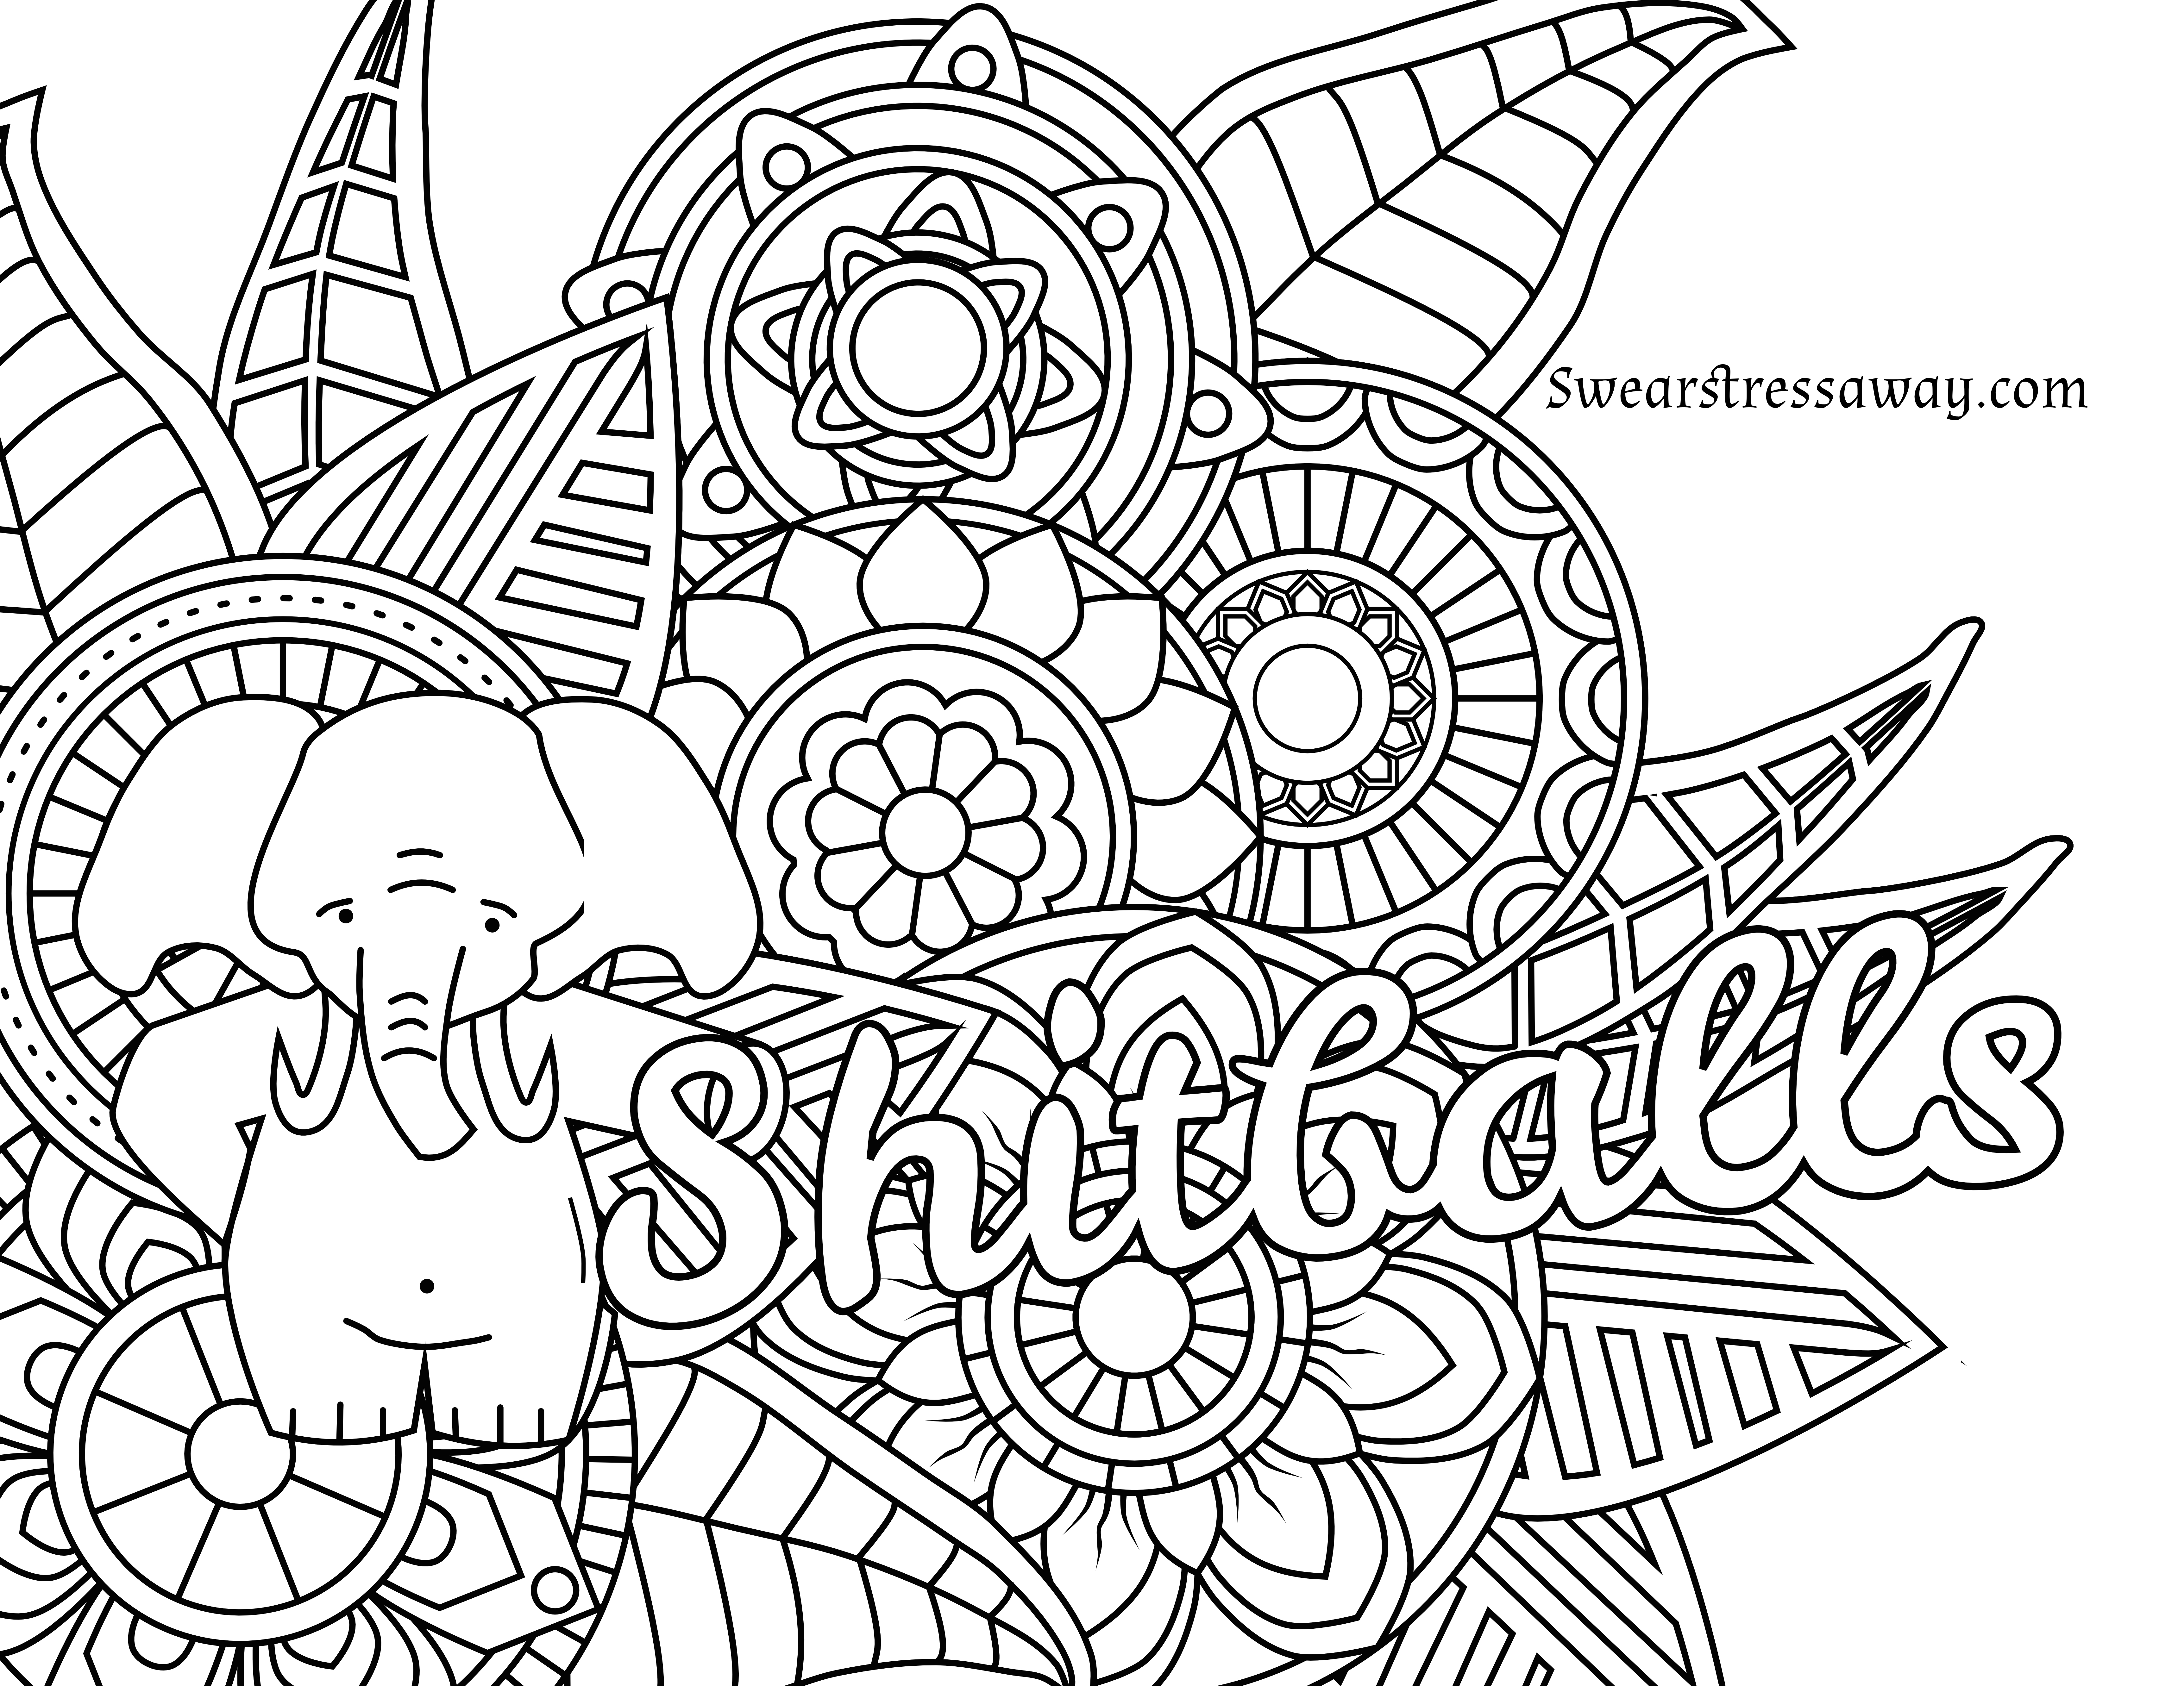 colouring pages to print off owl coloring pages to print only coloring pages colouring pages print to off